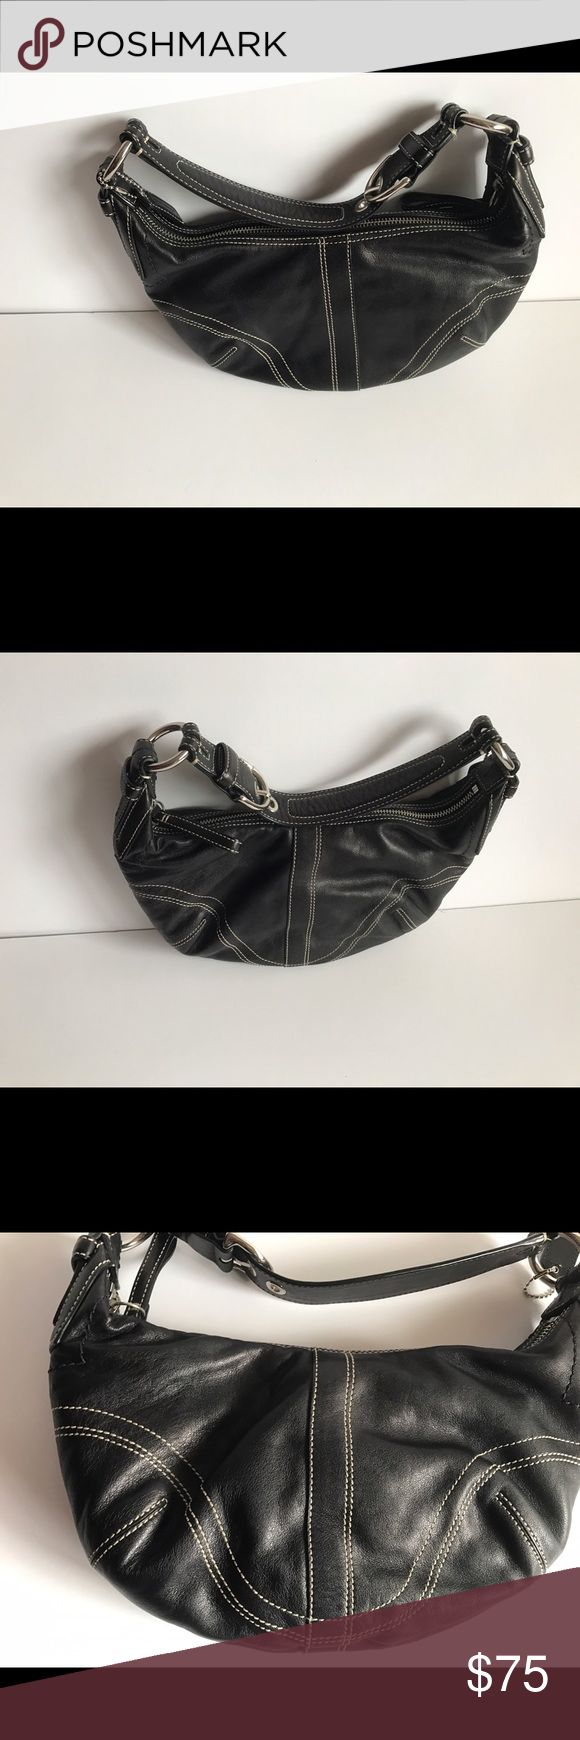 Leather Coach hobo bag Excellent condition; used just a few times. Coach Bags Hobos